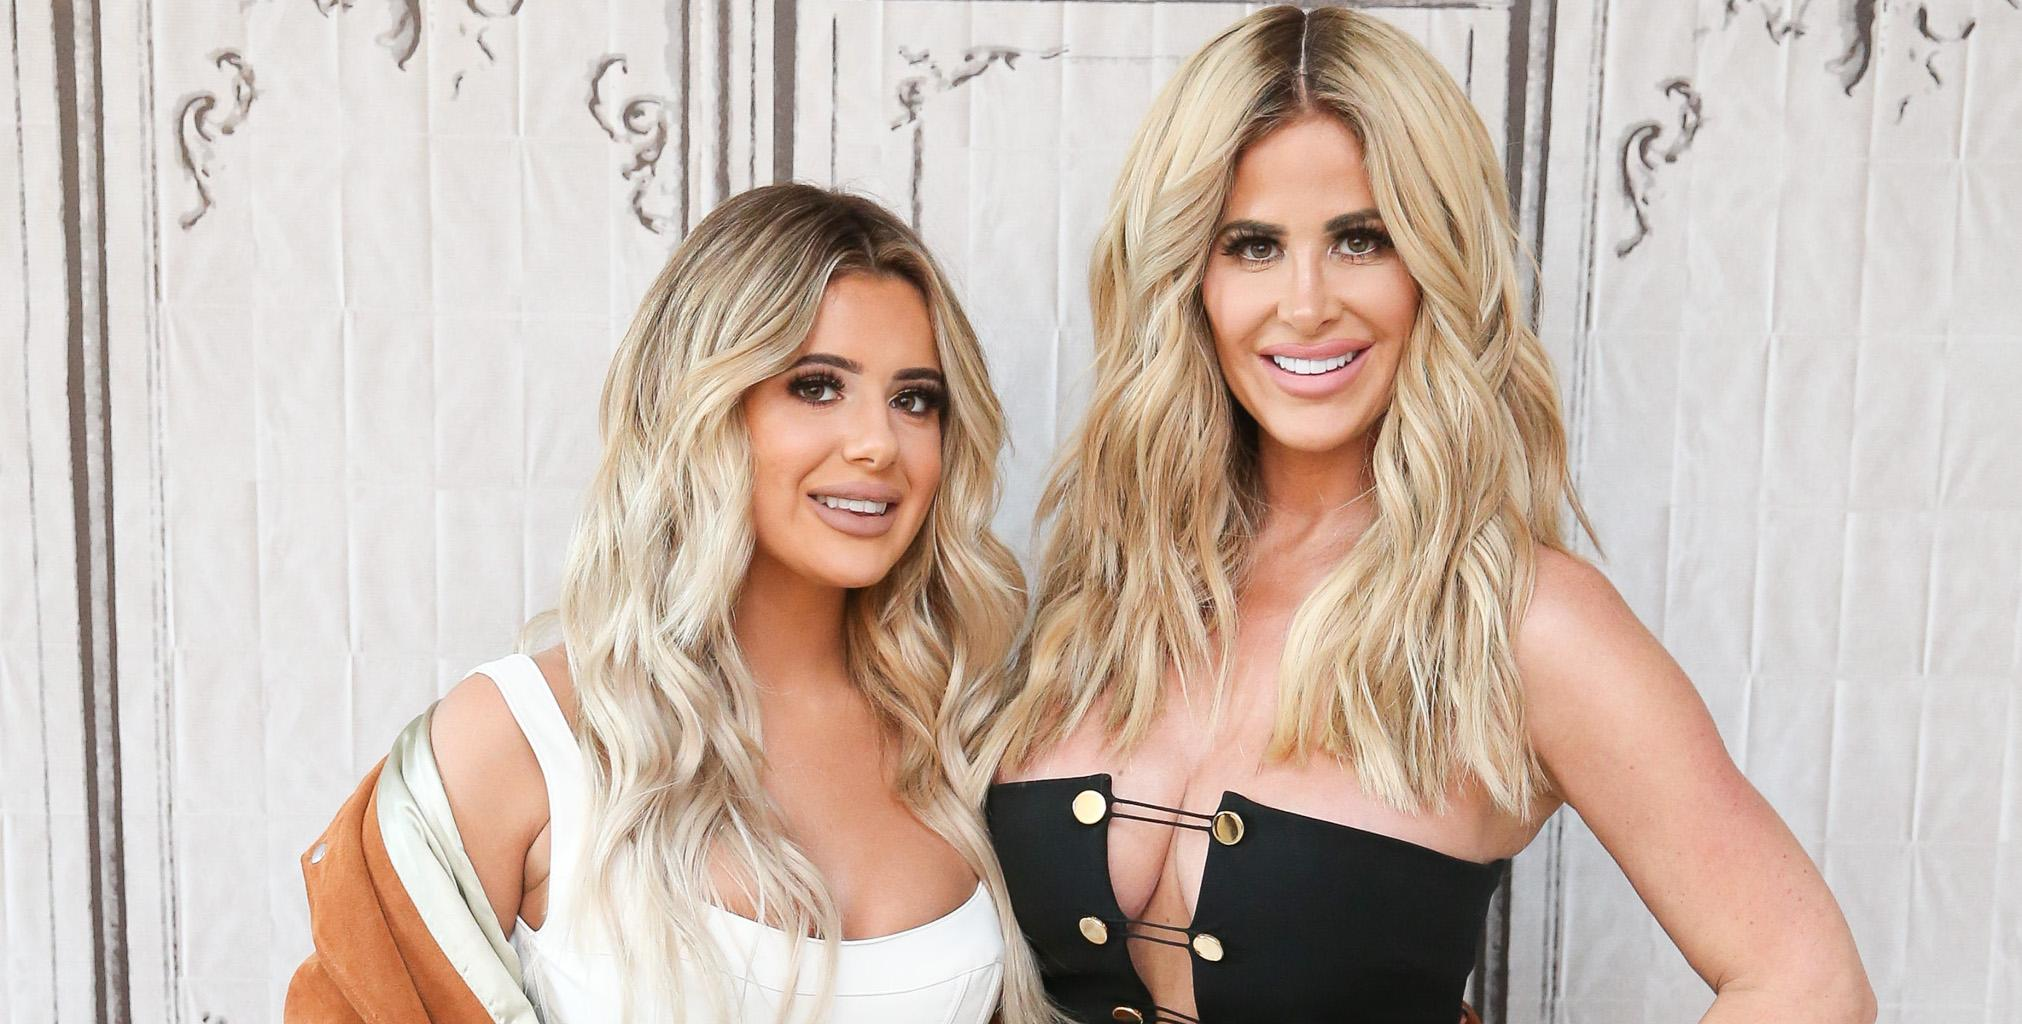 Kim Zolciak' Latest Photo Of Brielle Biermann Has Fans Saying She's Trying Te Replicate Her Mom With Huge Lips